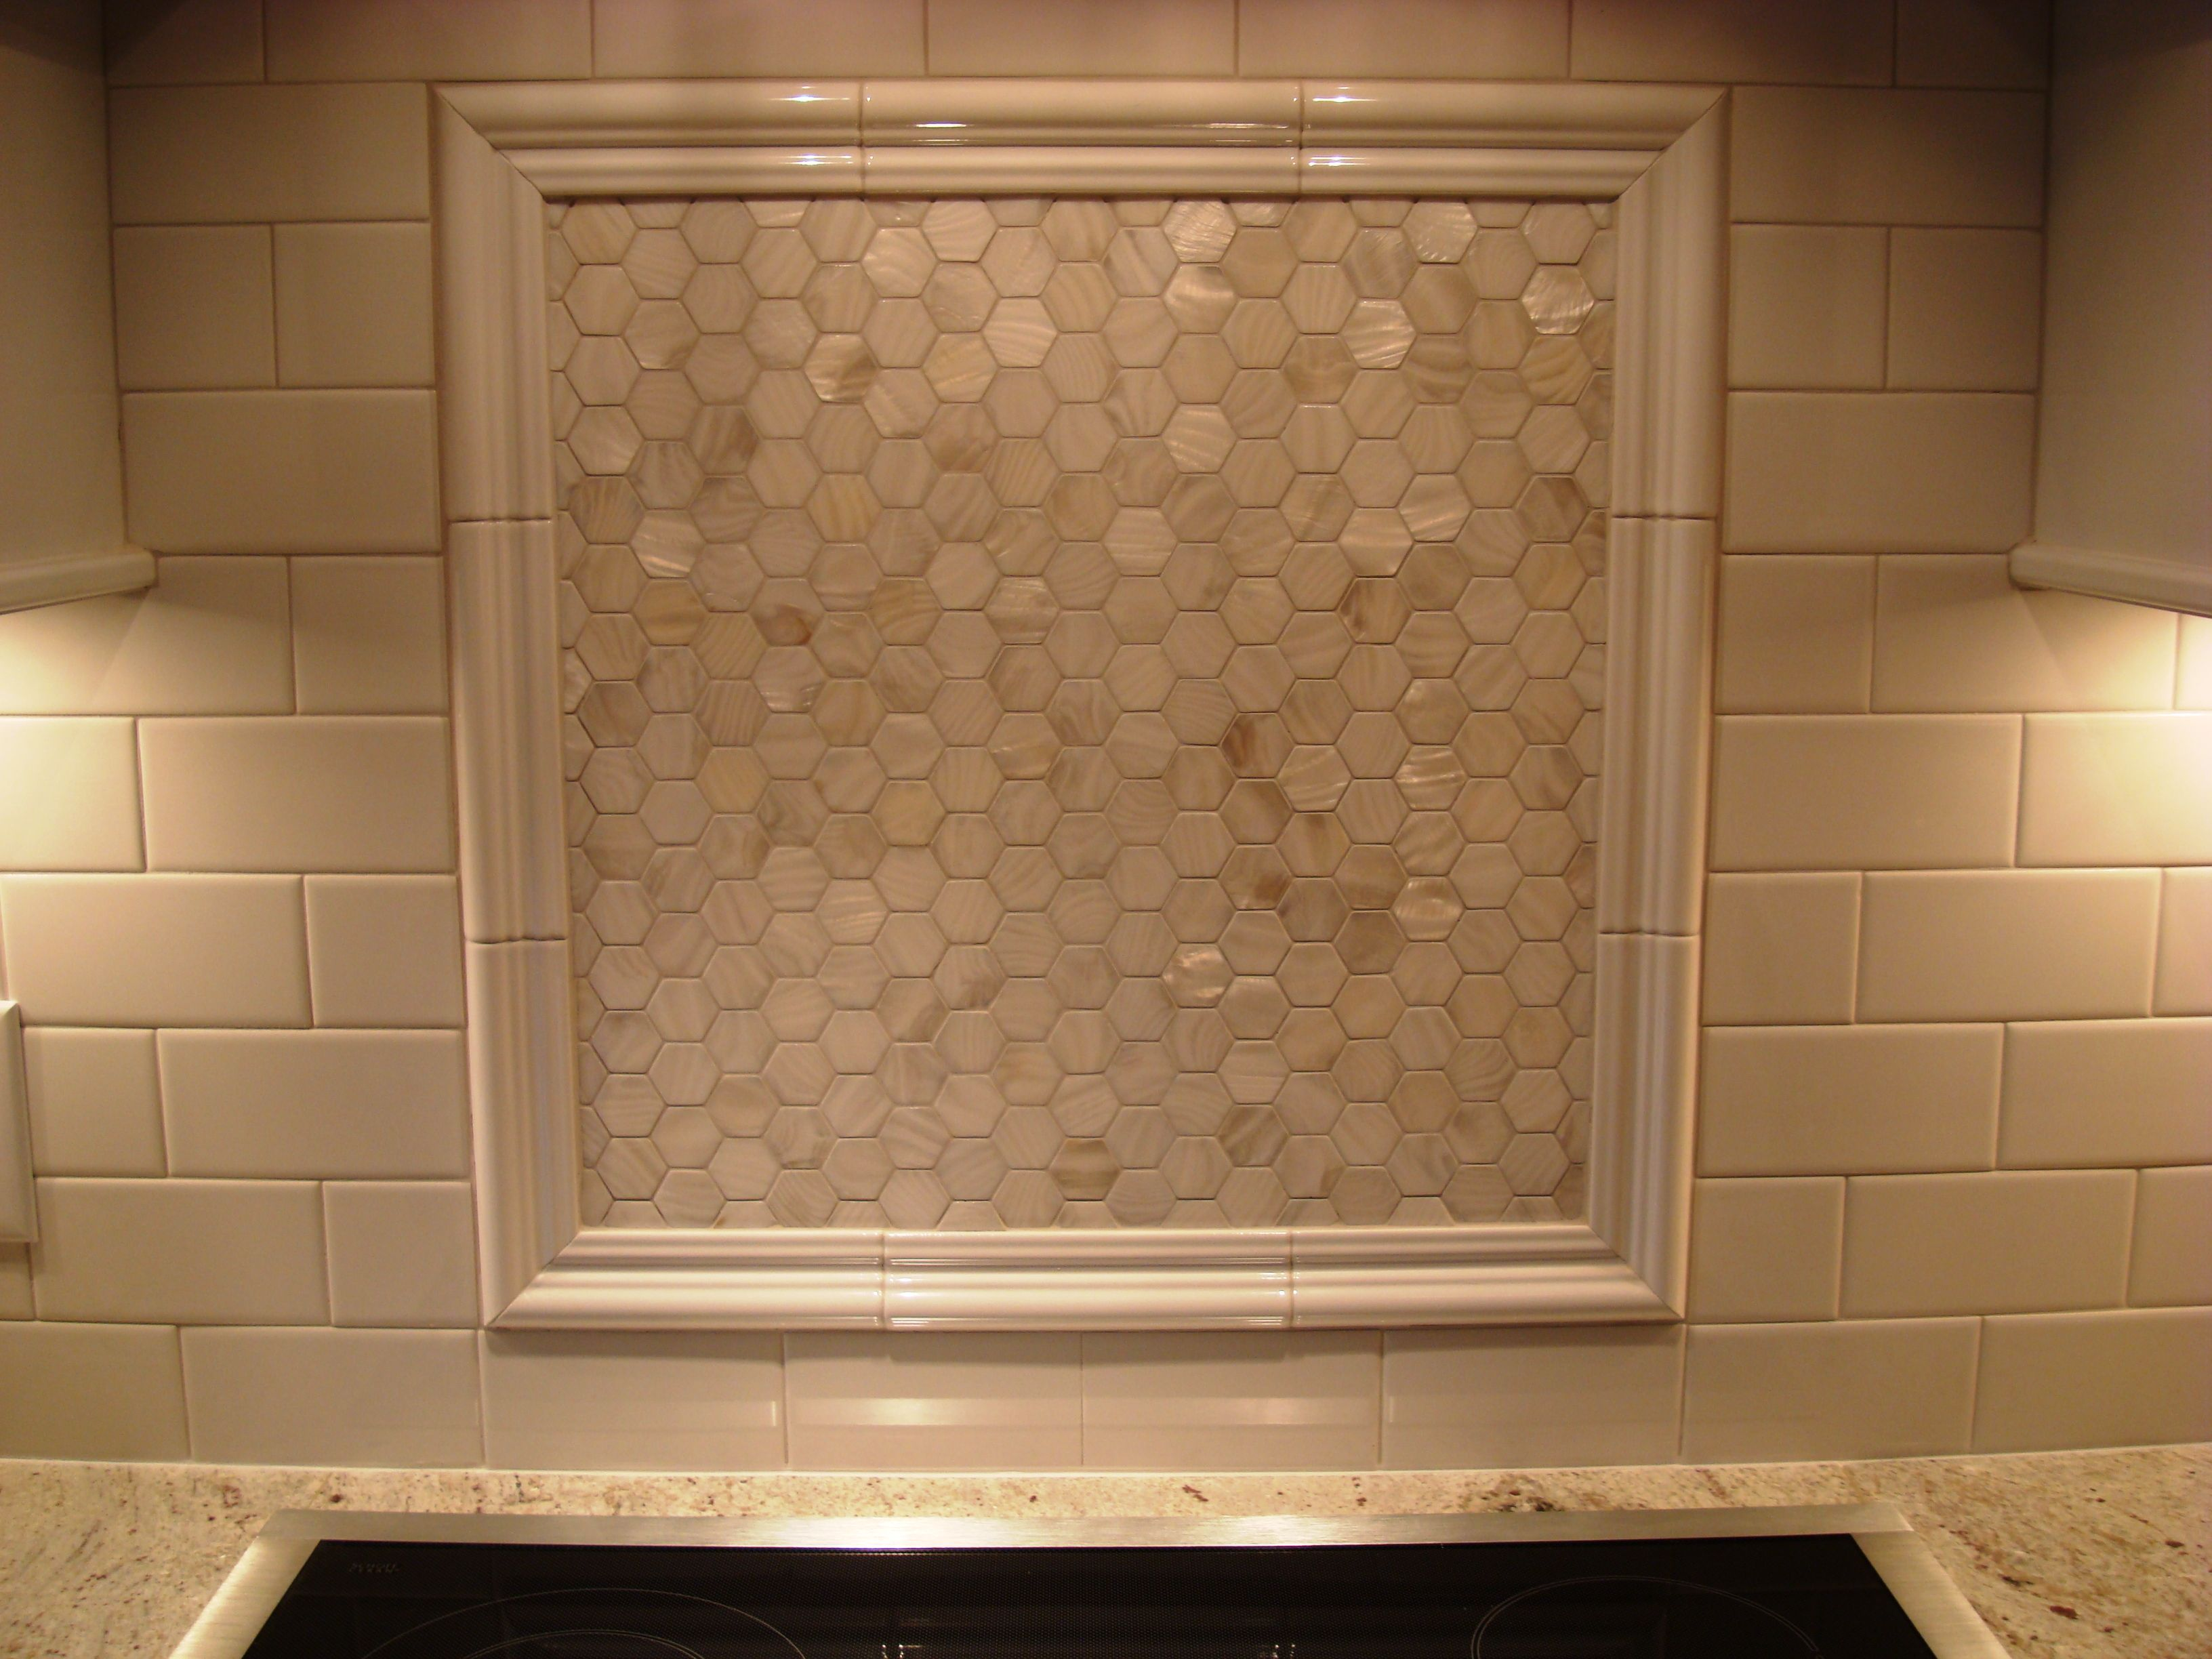 Superb Over The Stove Backsplash | The Mother Of Pearl Backsplash Above The Stove  With White Ceramic